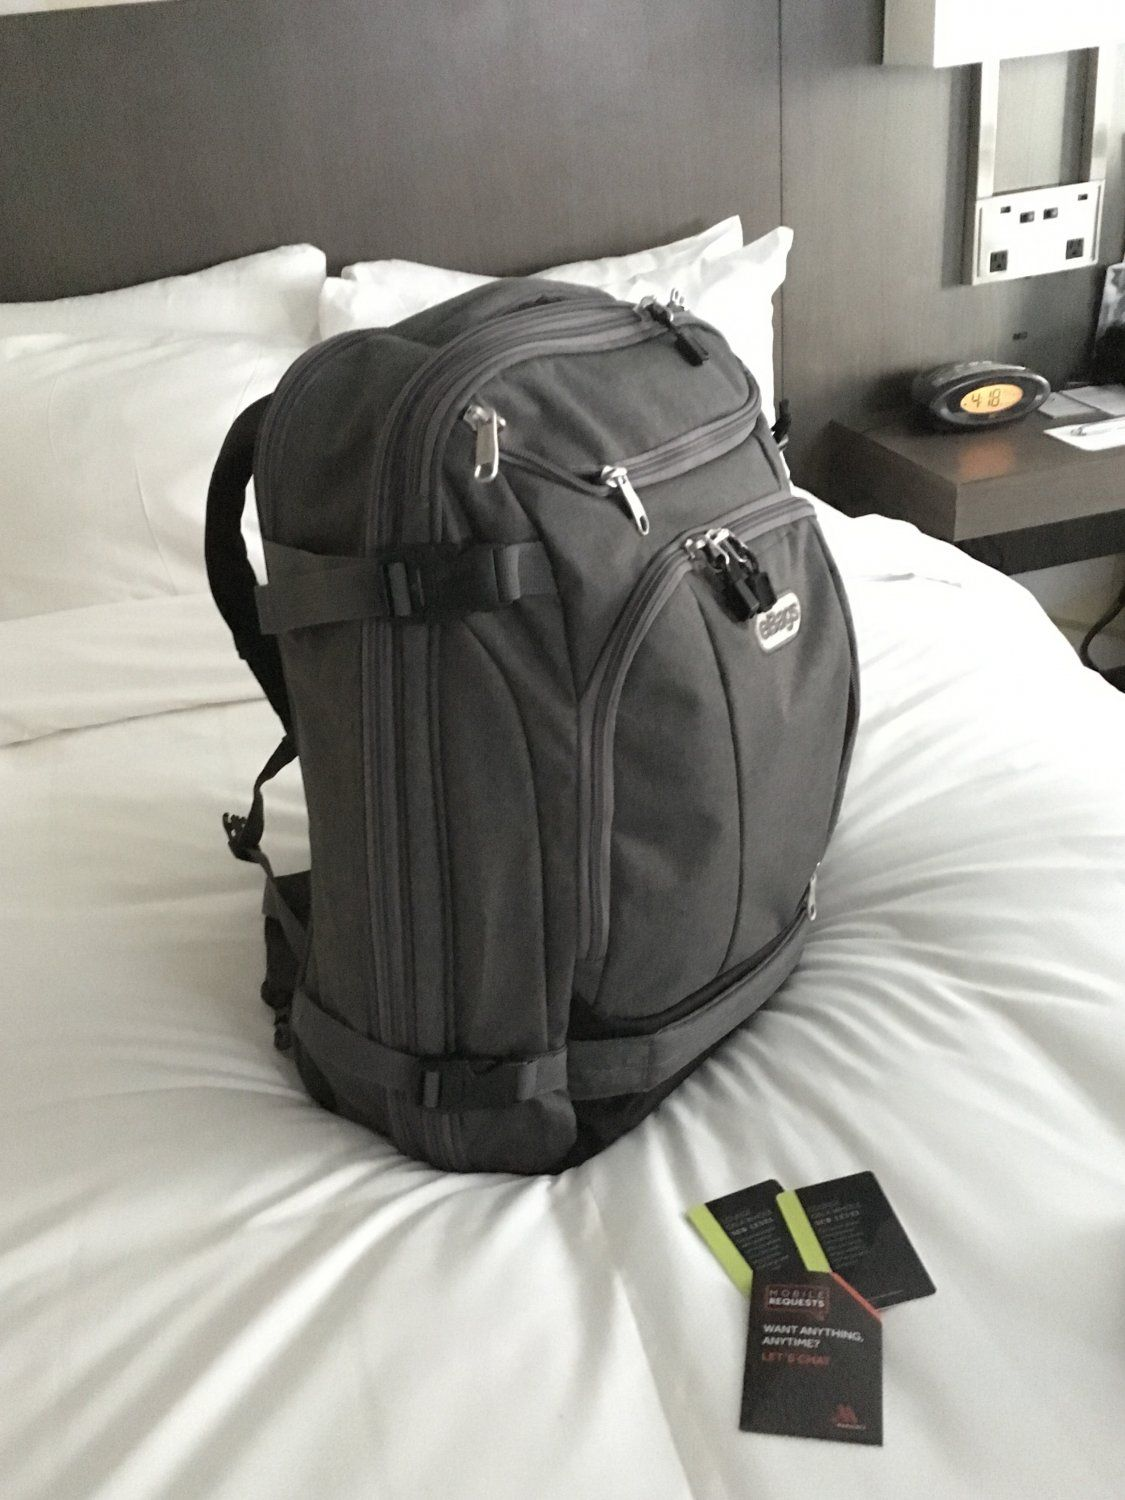 eBags TLS Mother Lode Weekender Convertible Junior Travel Backpack -  Heathered Graphite grey. 19.5 x14 x9 . This ultimate carry-on travel ba c33c45ef12d65